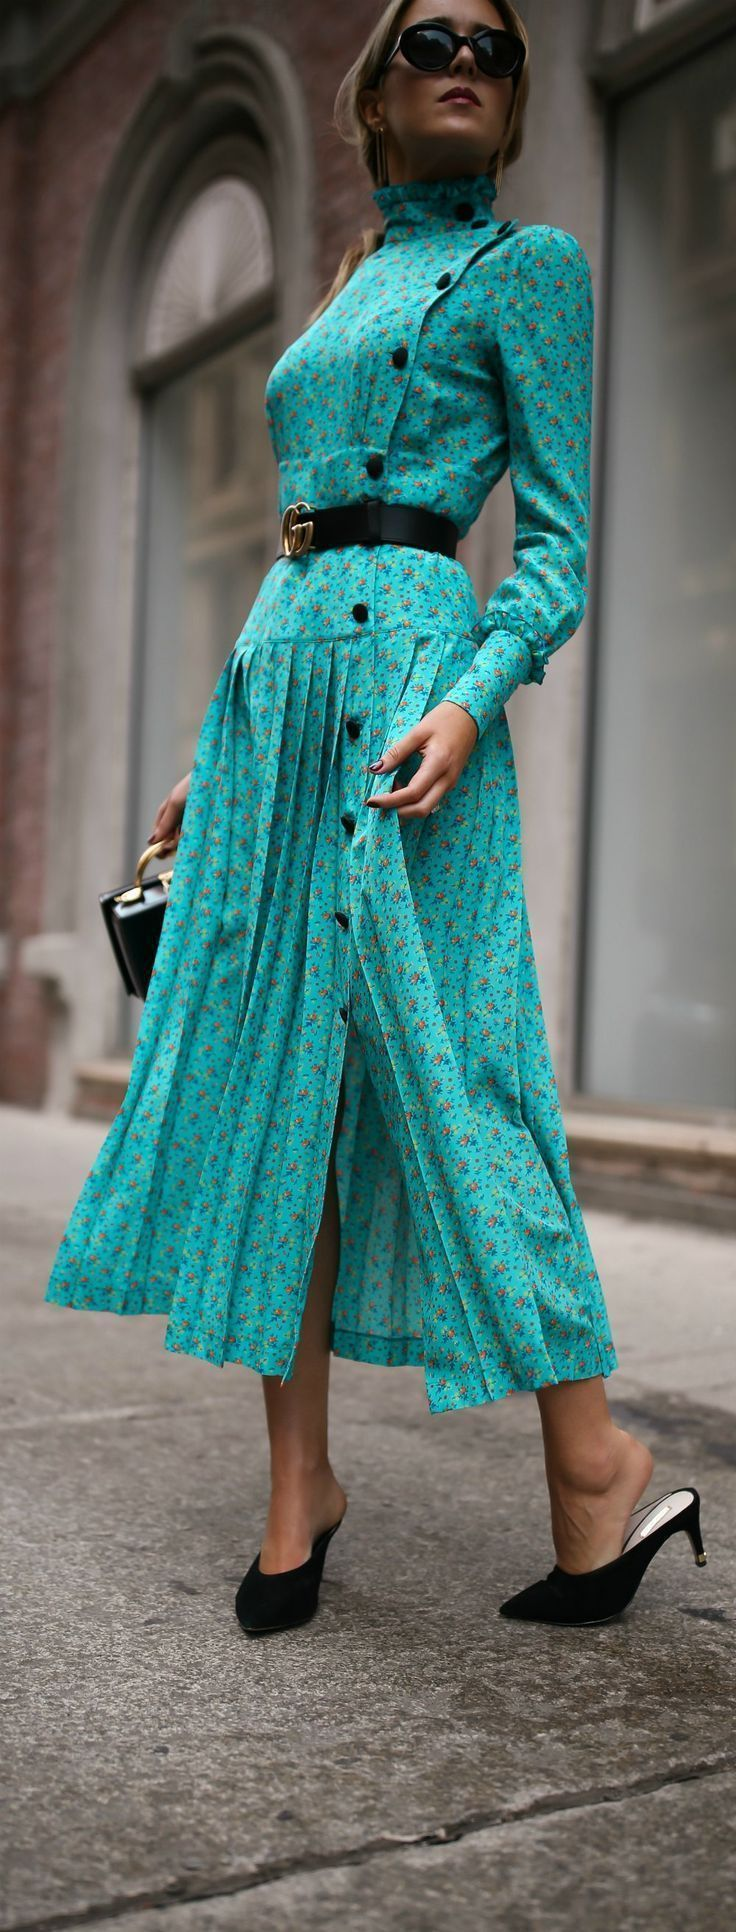 Fall Florals + Slide Pumps // Turquoise floral victorian pleated maxi dress, black slide pumps, small black box bag, leather belt, black sunglasses {Alessandra Rich, Mark Cross, Gucci, New York Fashion Week, NYFW}